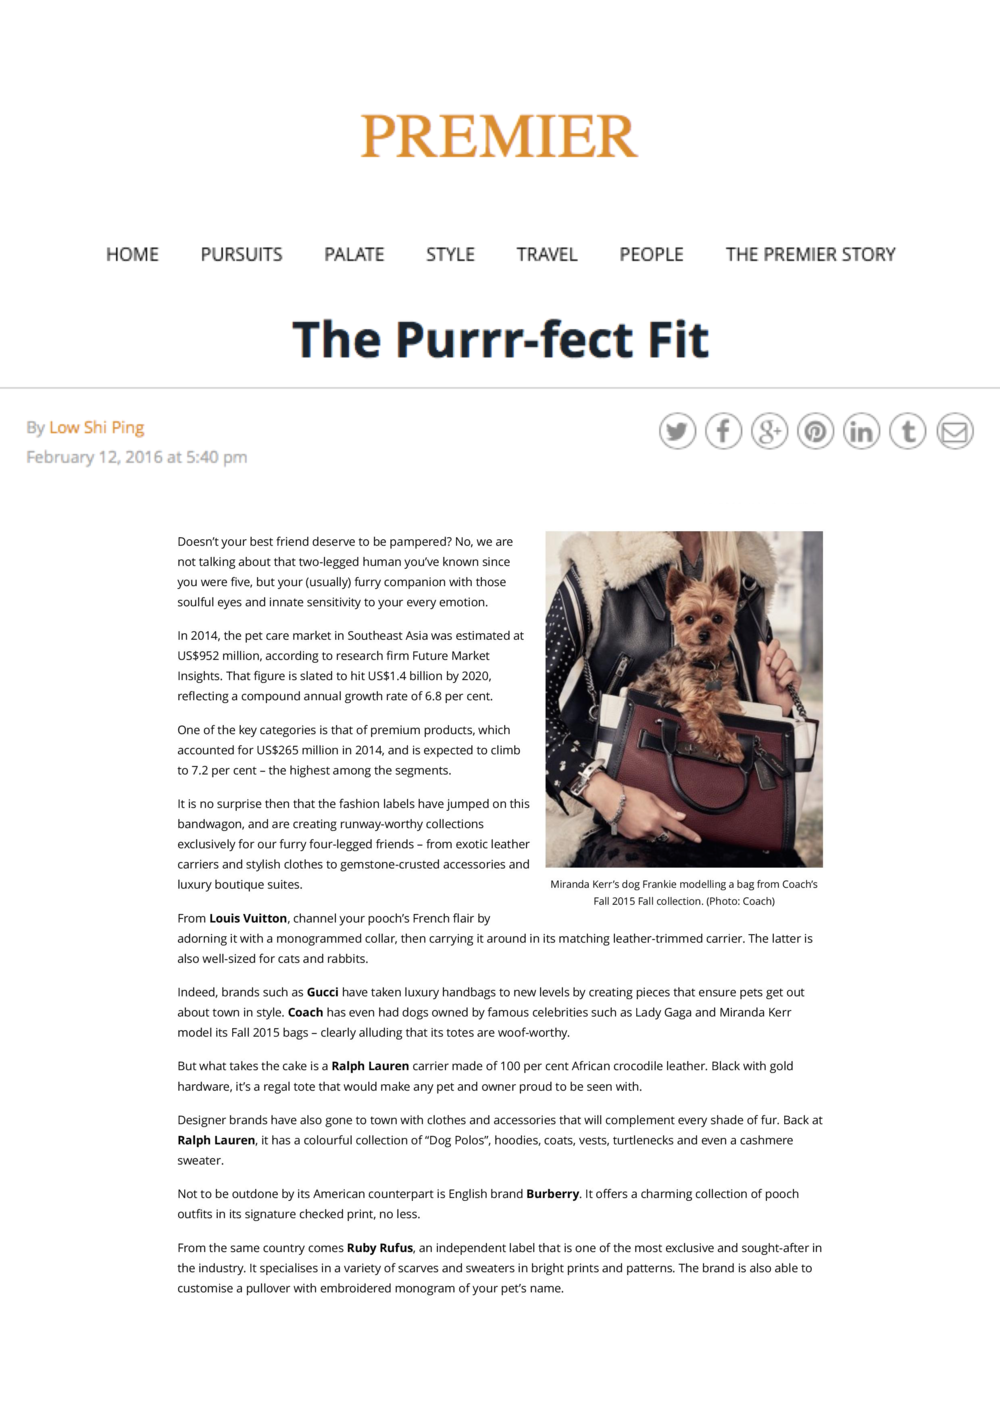 The Purrr-fect Fit - Premier-page-001.png